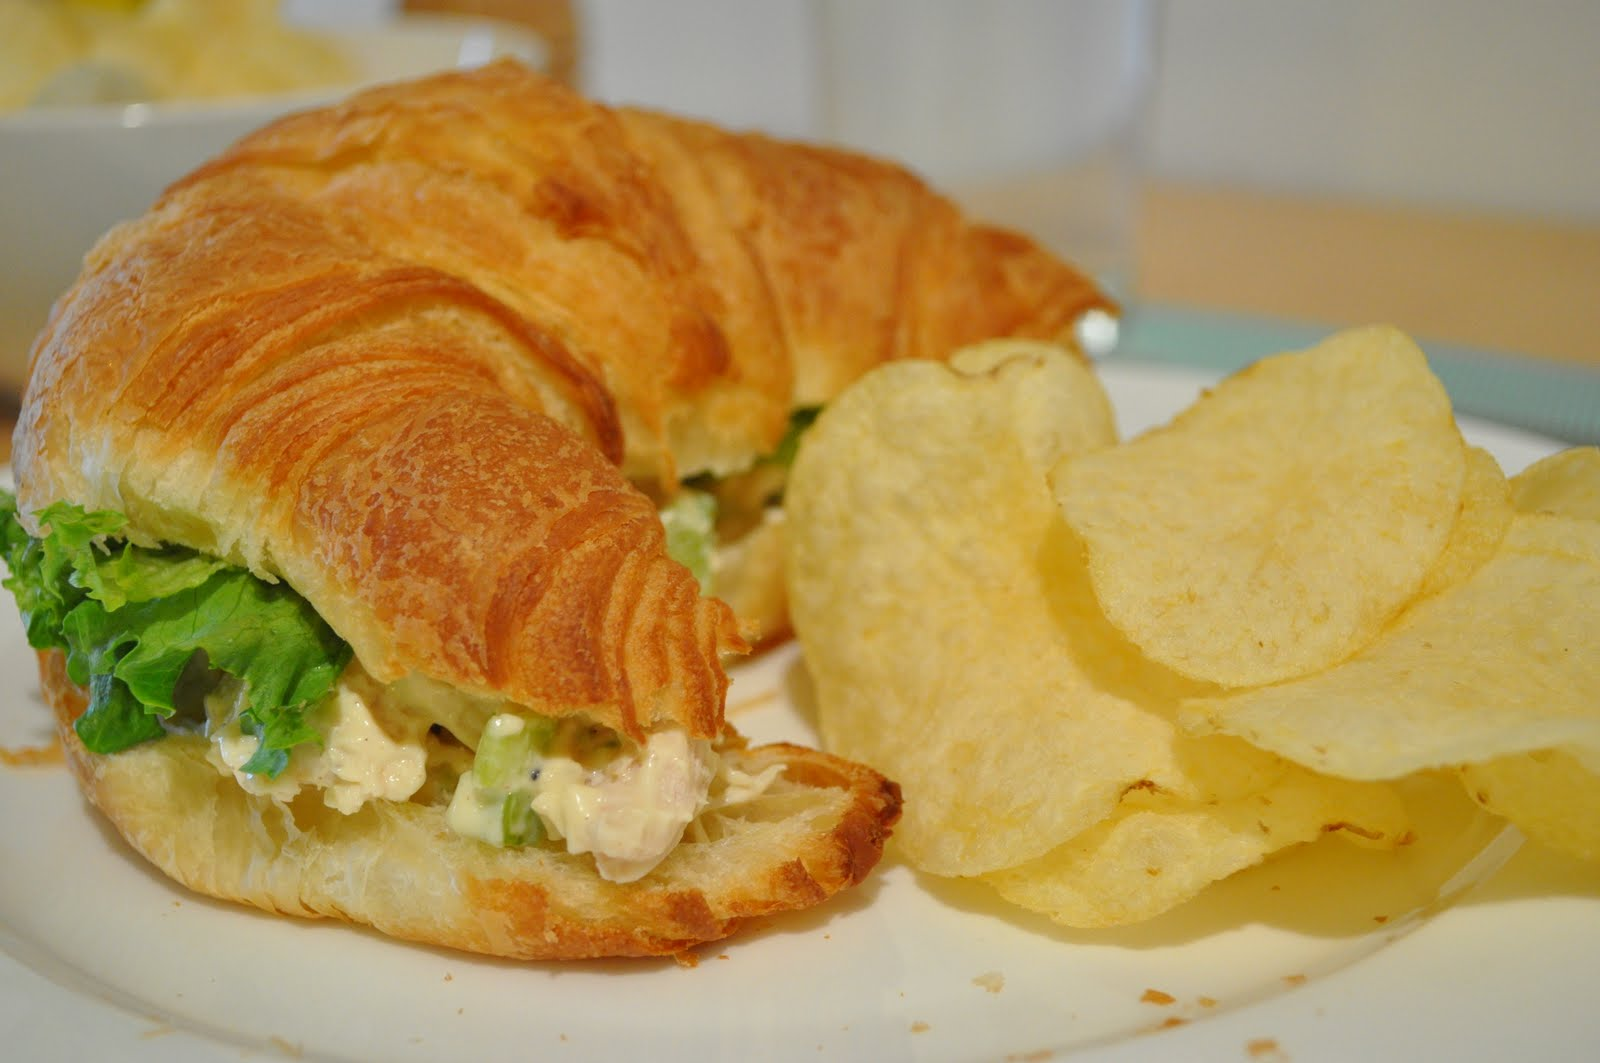 My Tiny Oven: Chicken Salad Sandwich